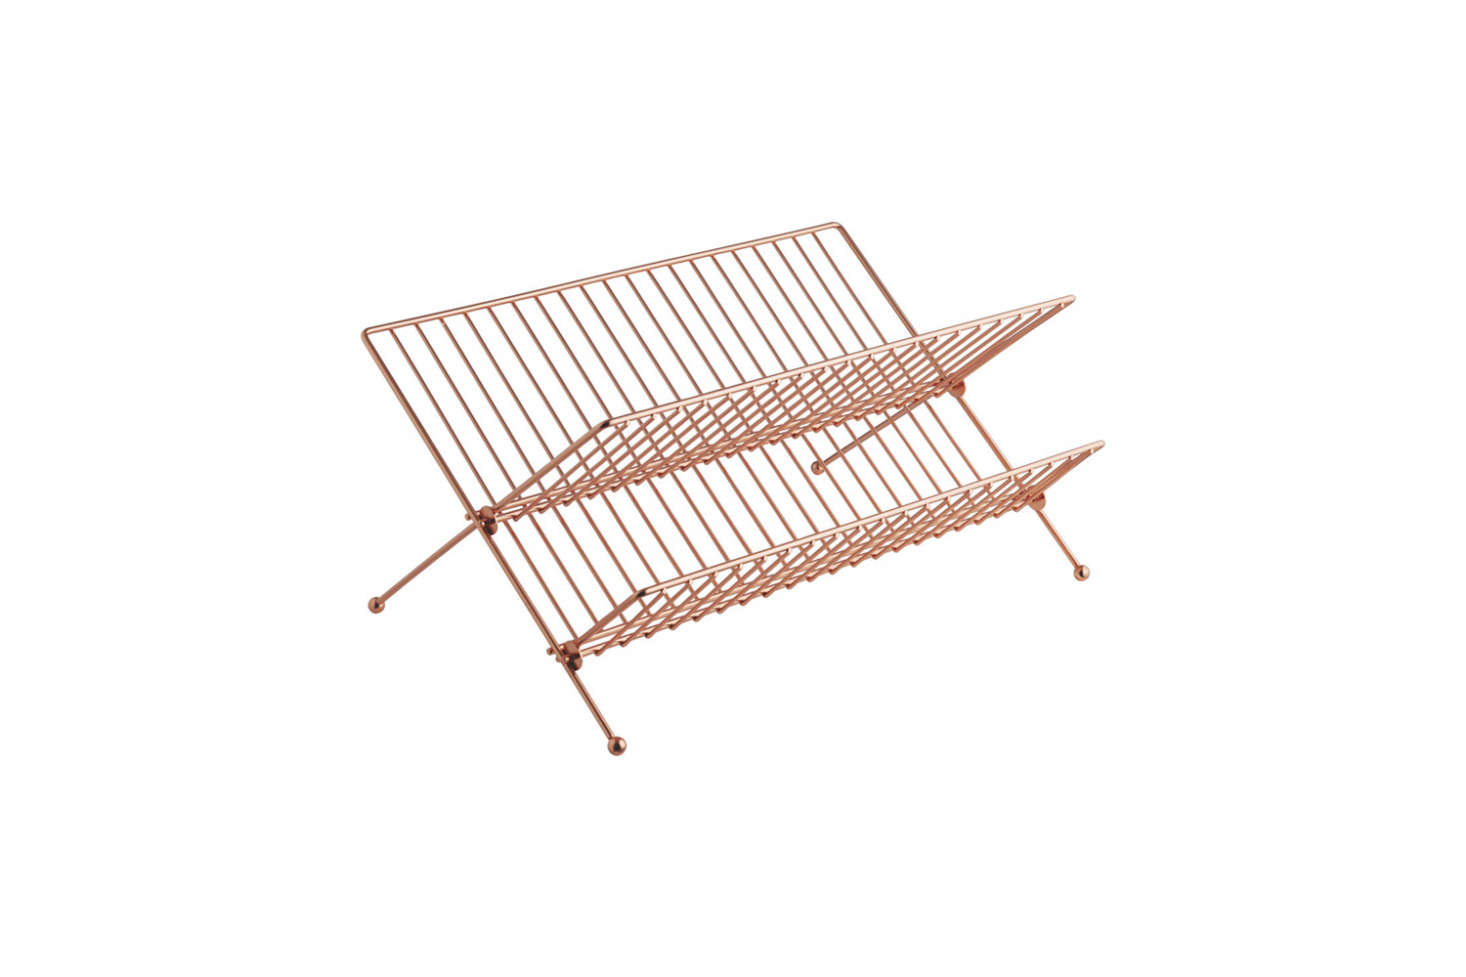 The Alka Copper Finish Metal Dish Drainer is £ at Habitat.